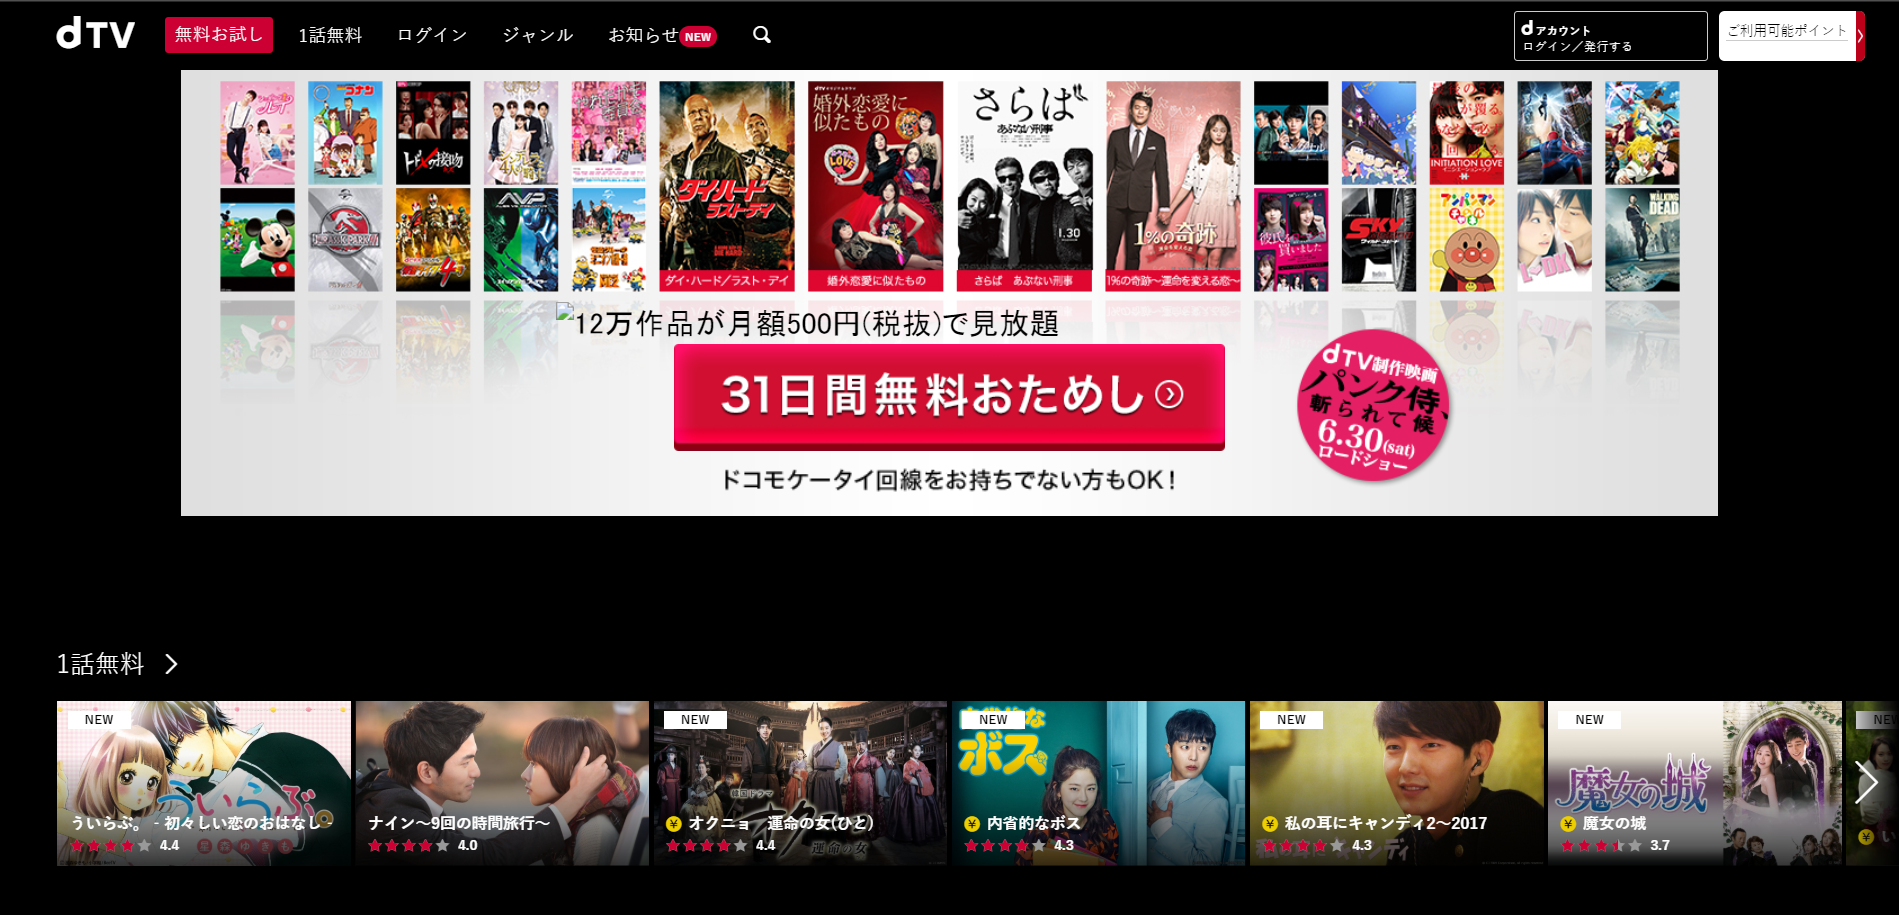 Japanese video streaming app dTV